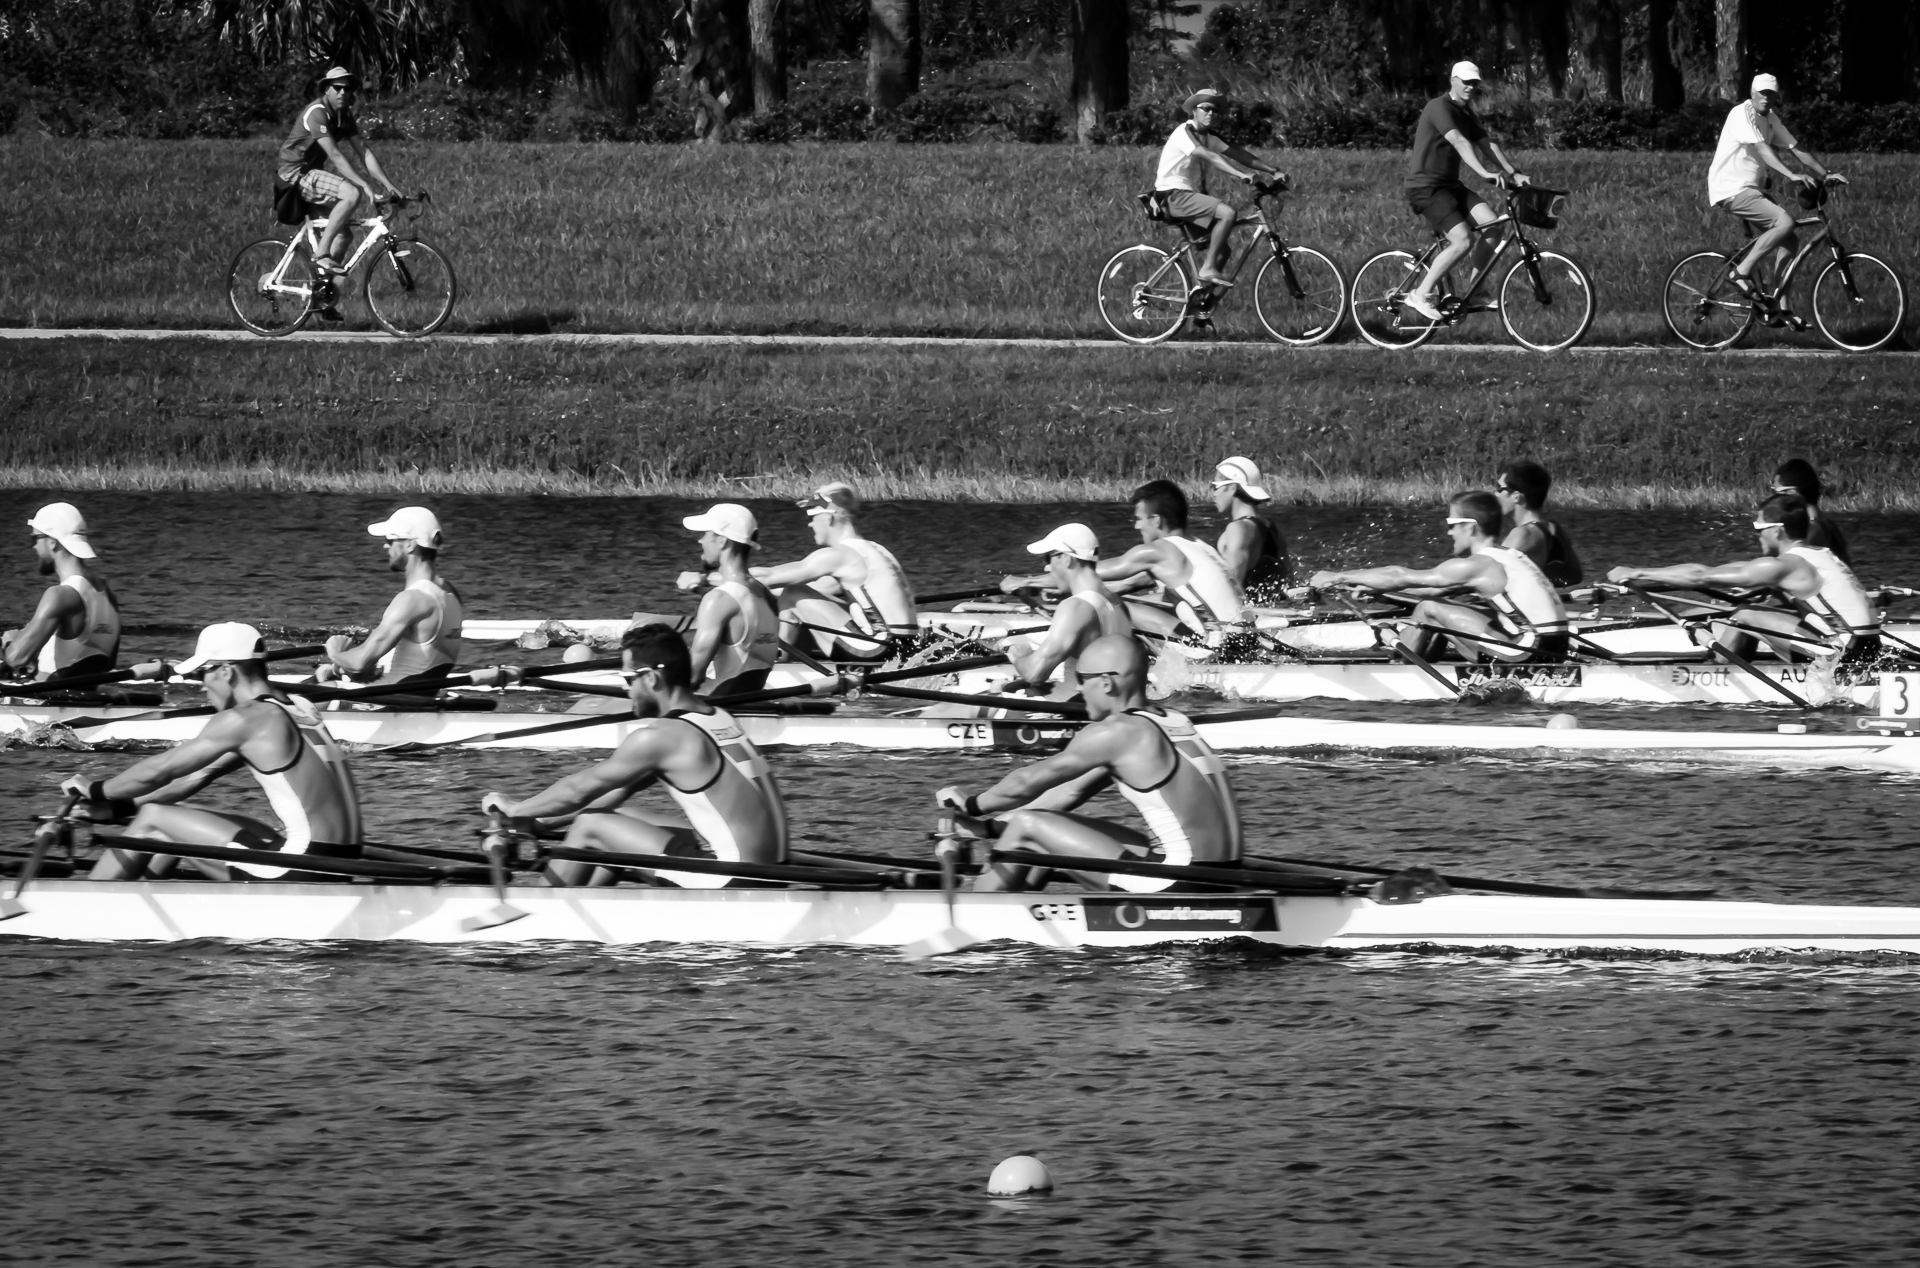 Rowers and Bikers